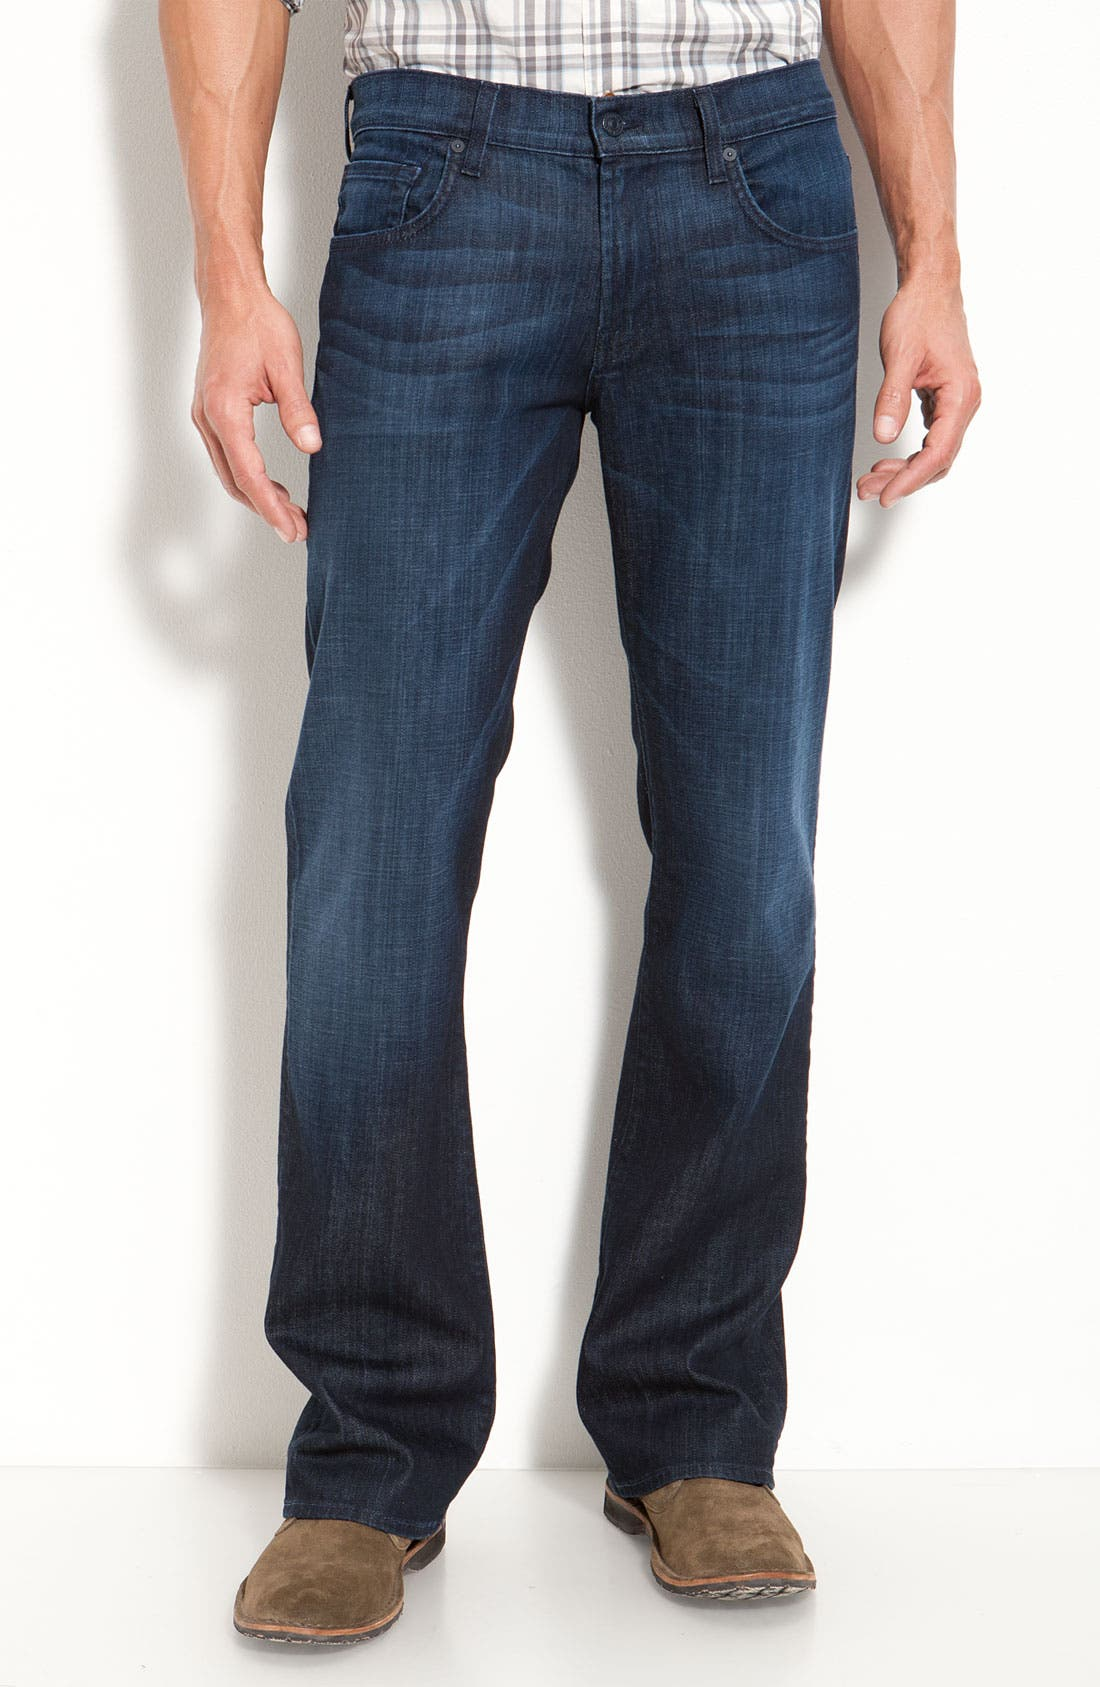 Alternate Image 1 Selected - 7 For All Mankind® 'Brett' Relaxed Bootcut Jeans (Rose Ave)